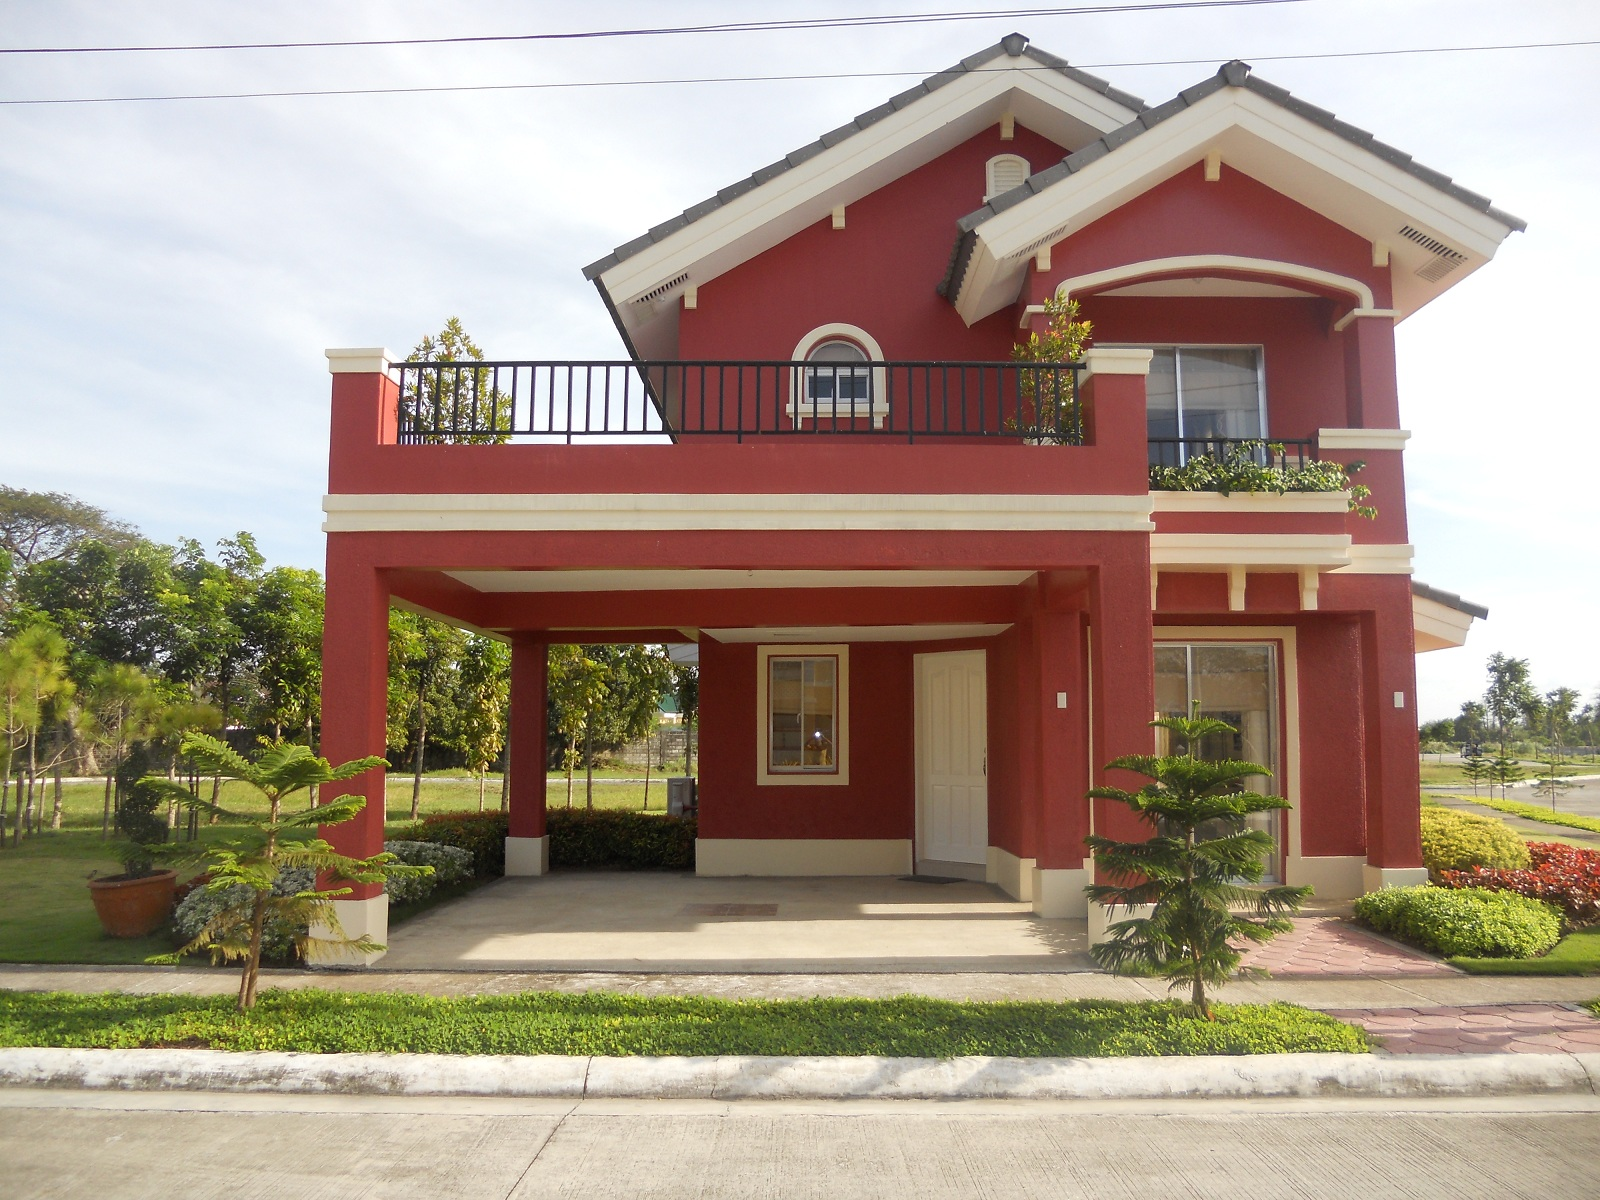 Savannah glades iloilo within savannah iloilo by camella for Houses models